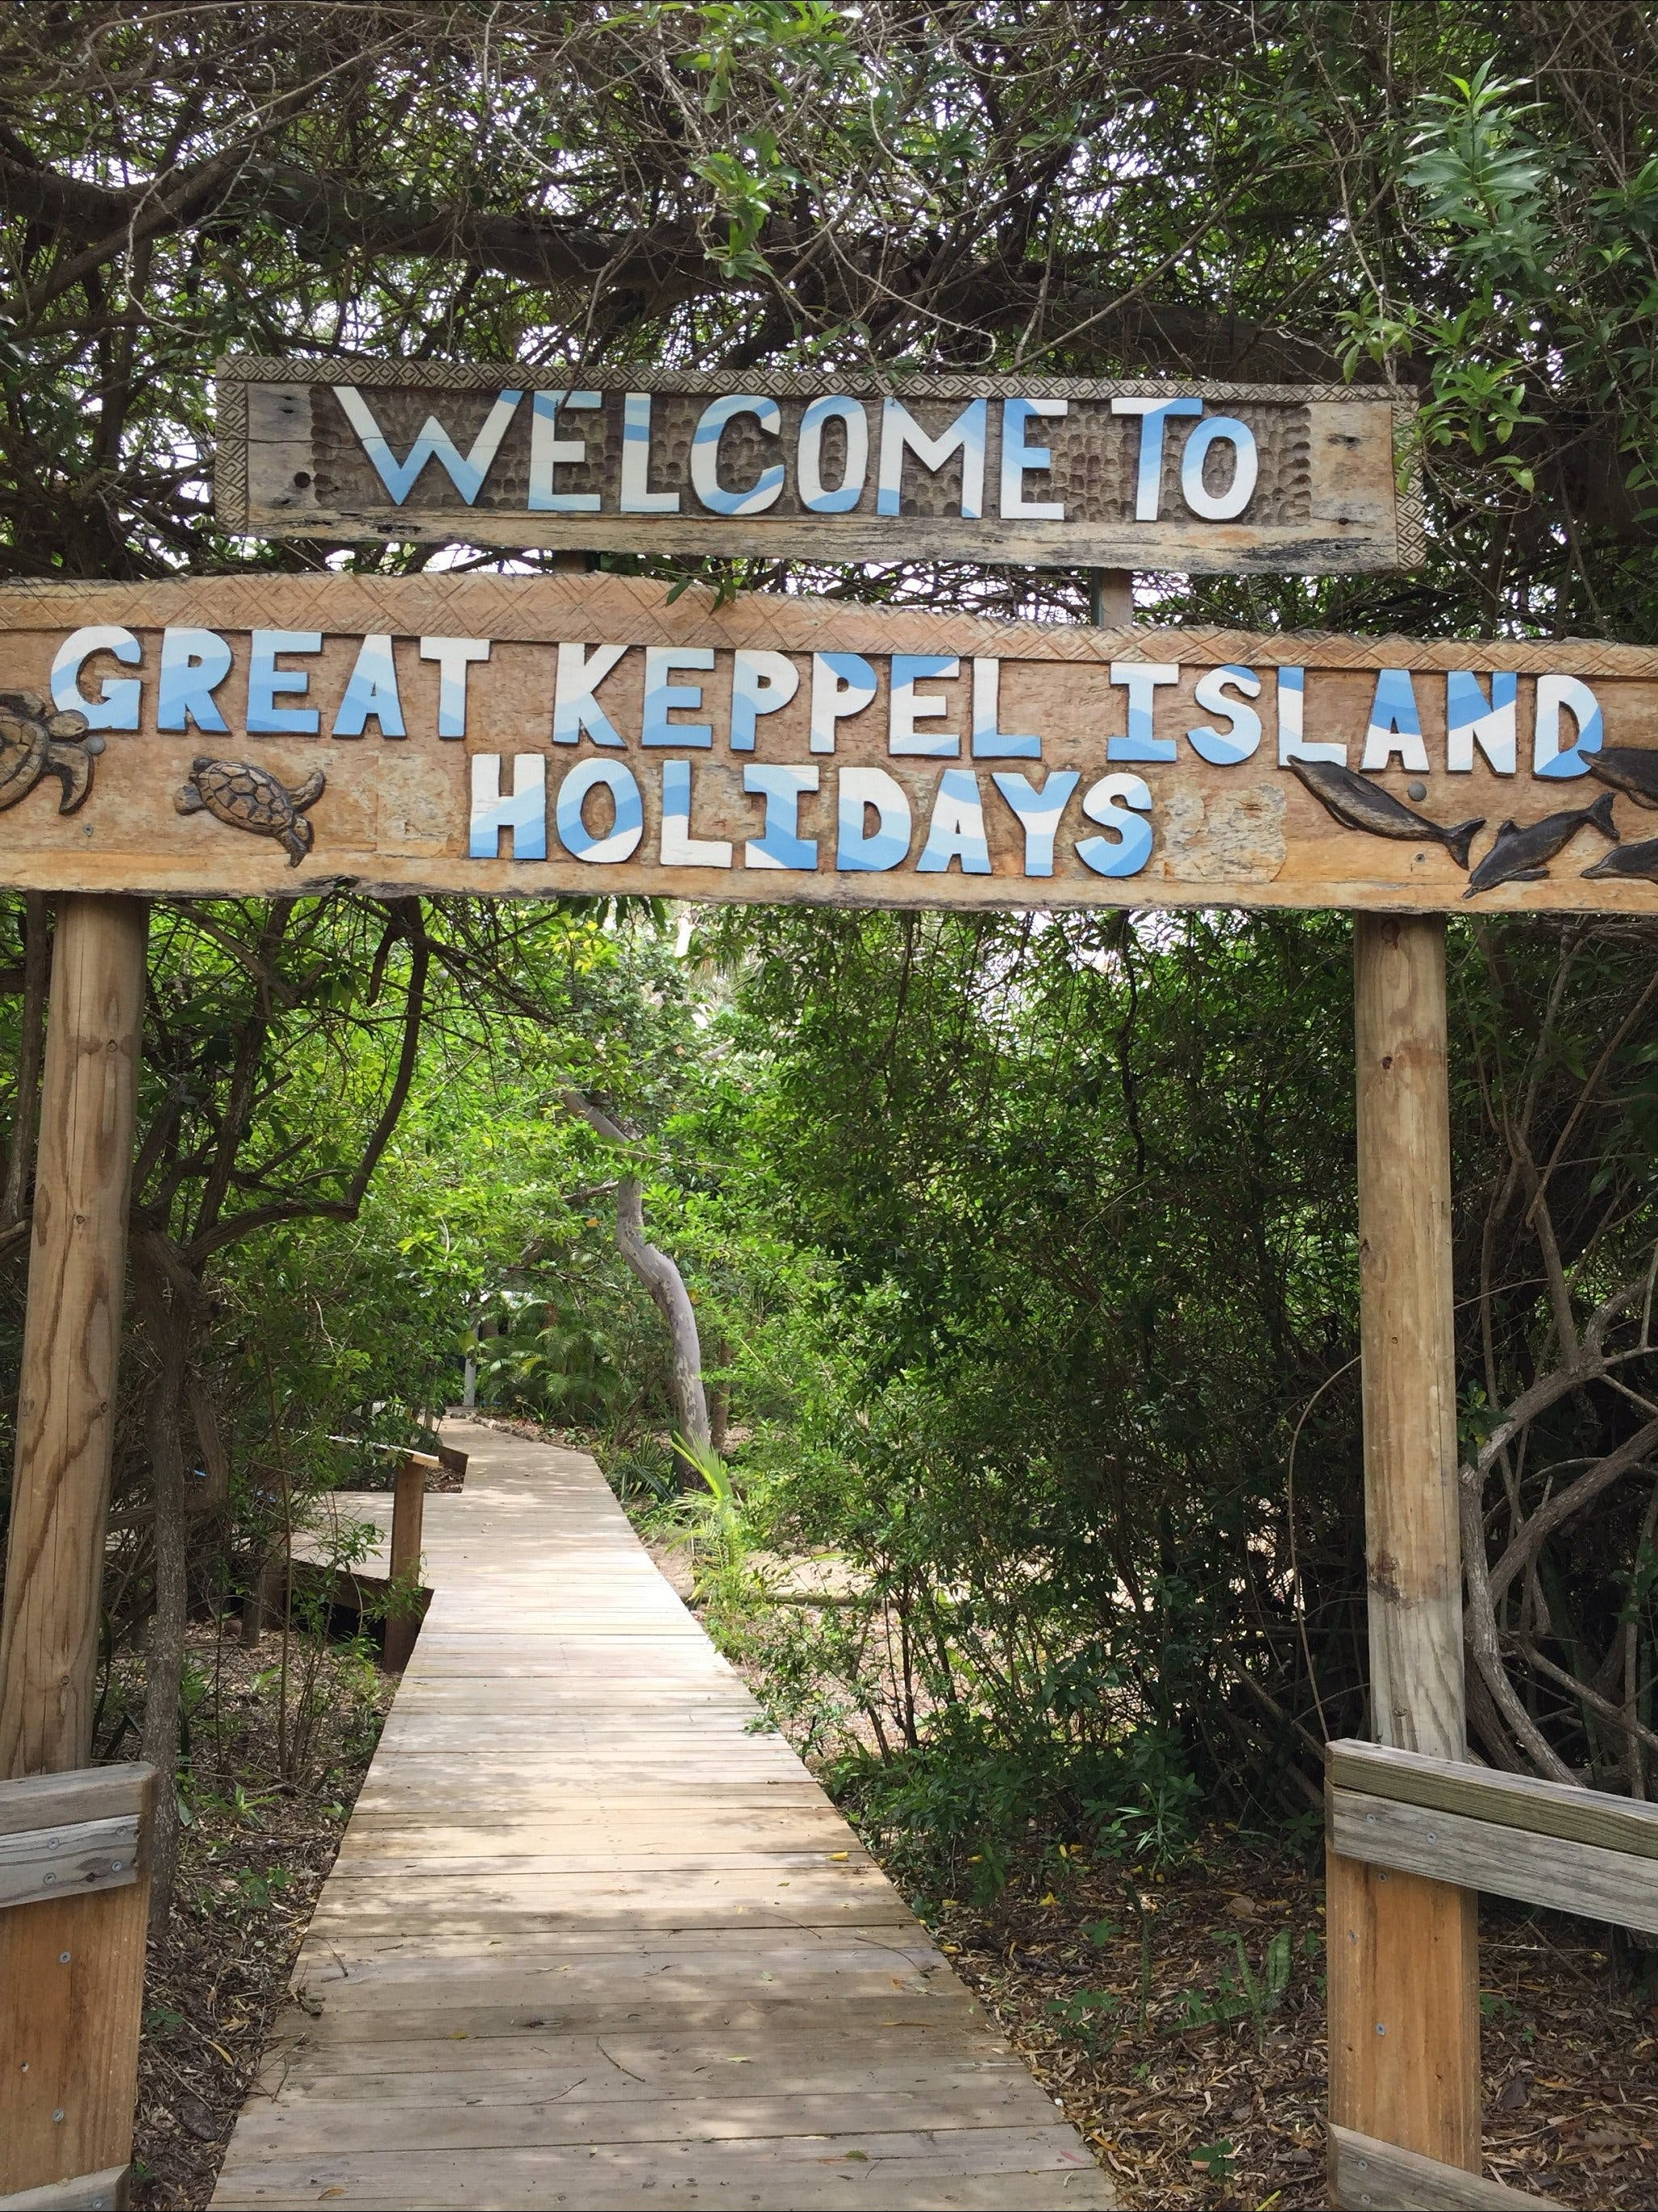 Great Keppel Island Holiday Village - Accommodation Adelaide